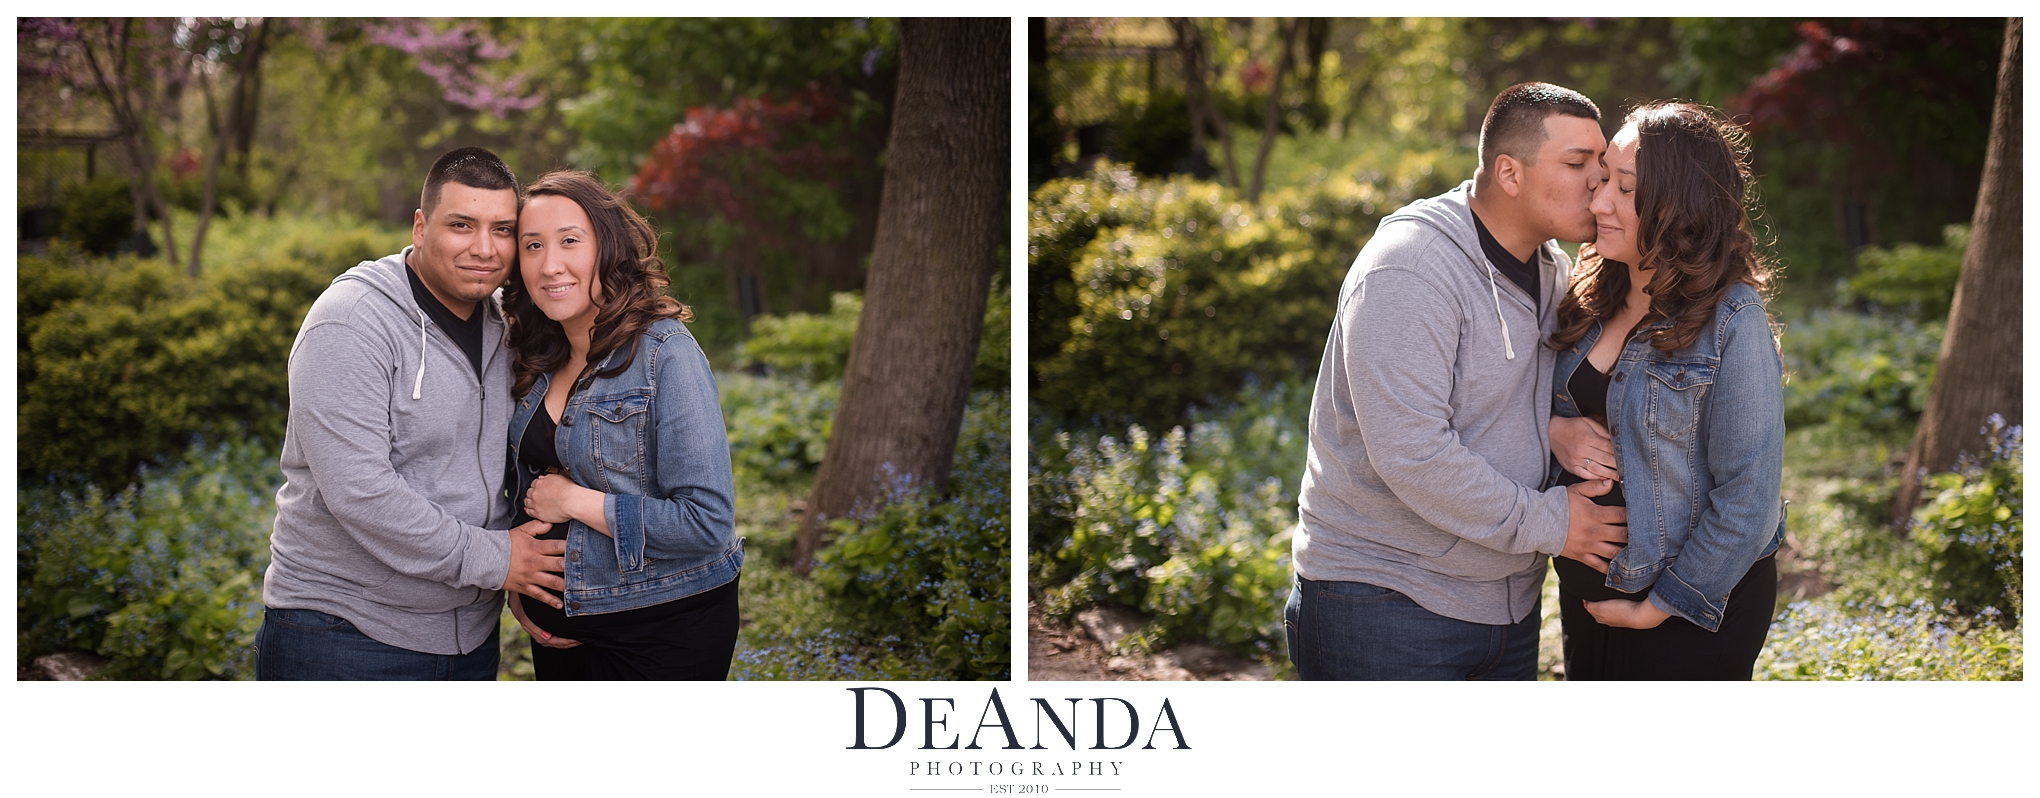 South Pond Maternity Photoshoot